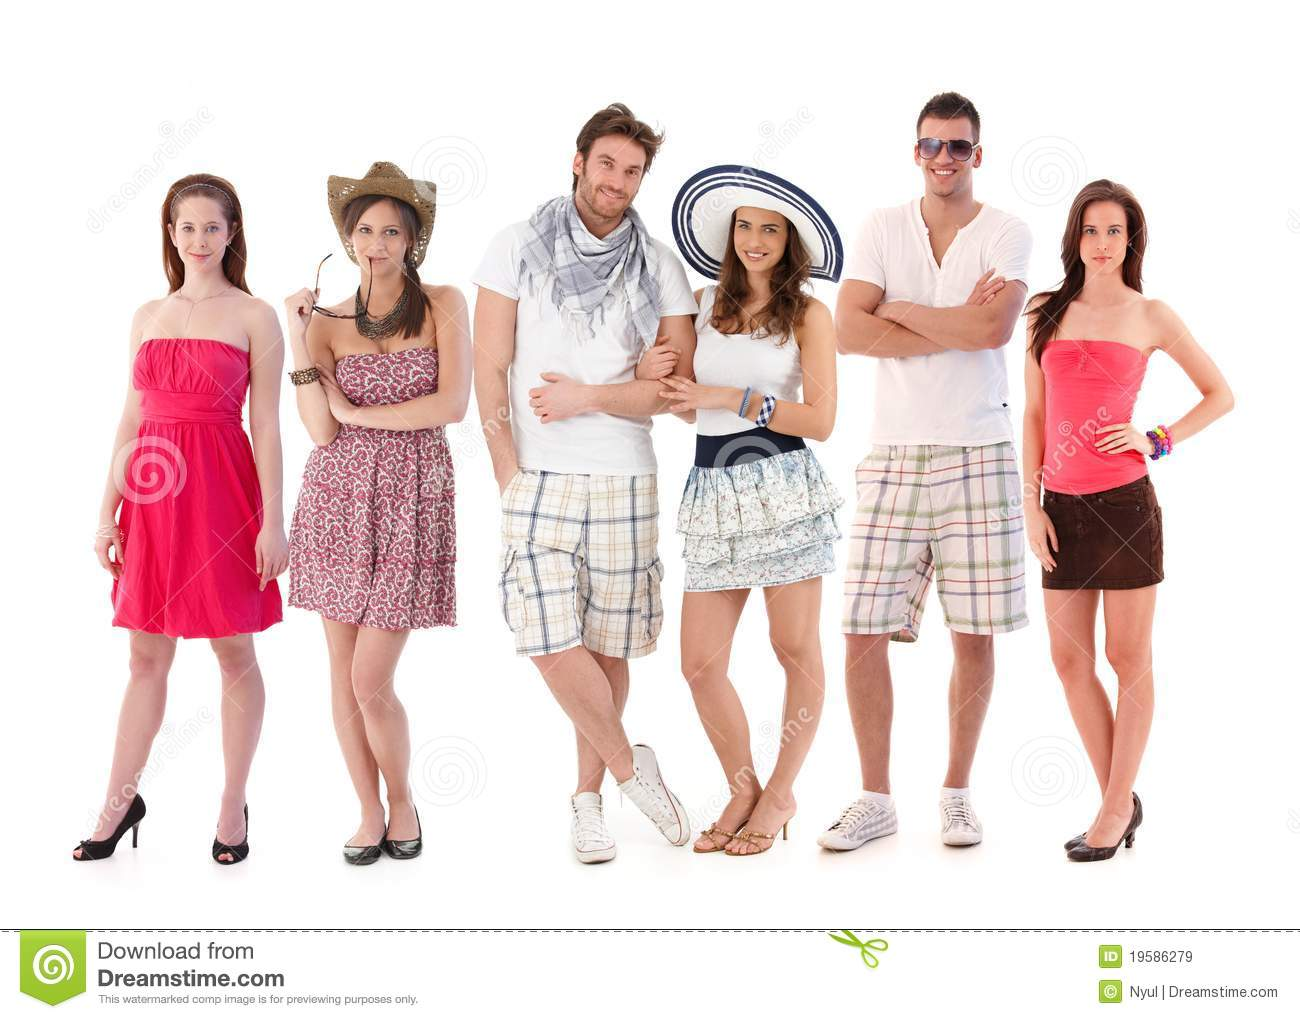 Group Portrait Of Young People In Summer Clothing Royalty Free Stock Images Image 19586279